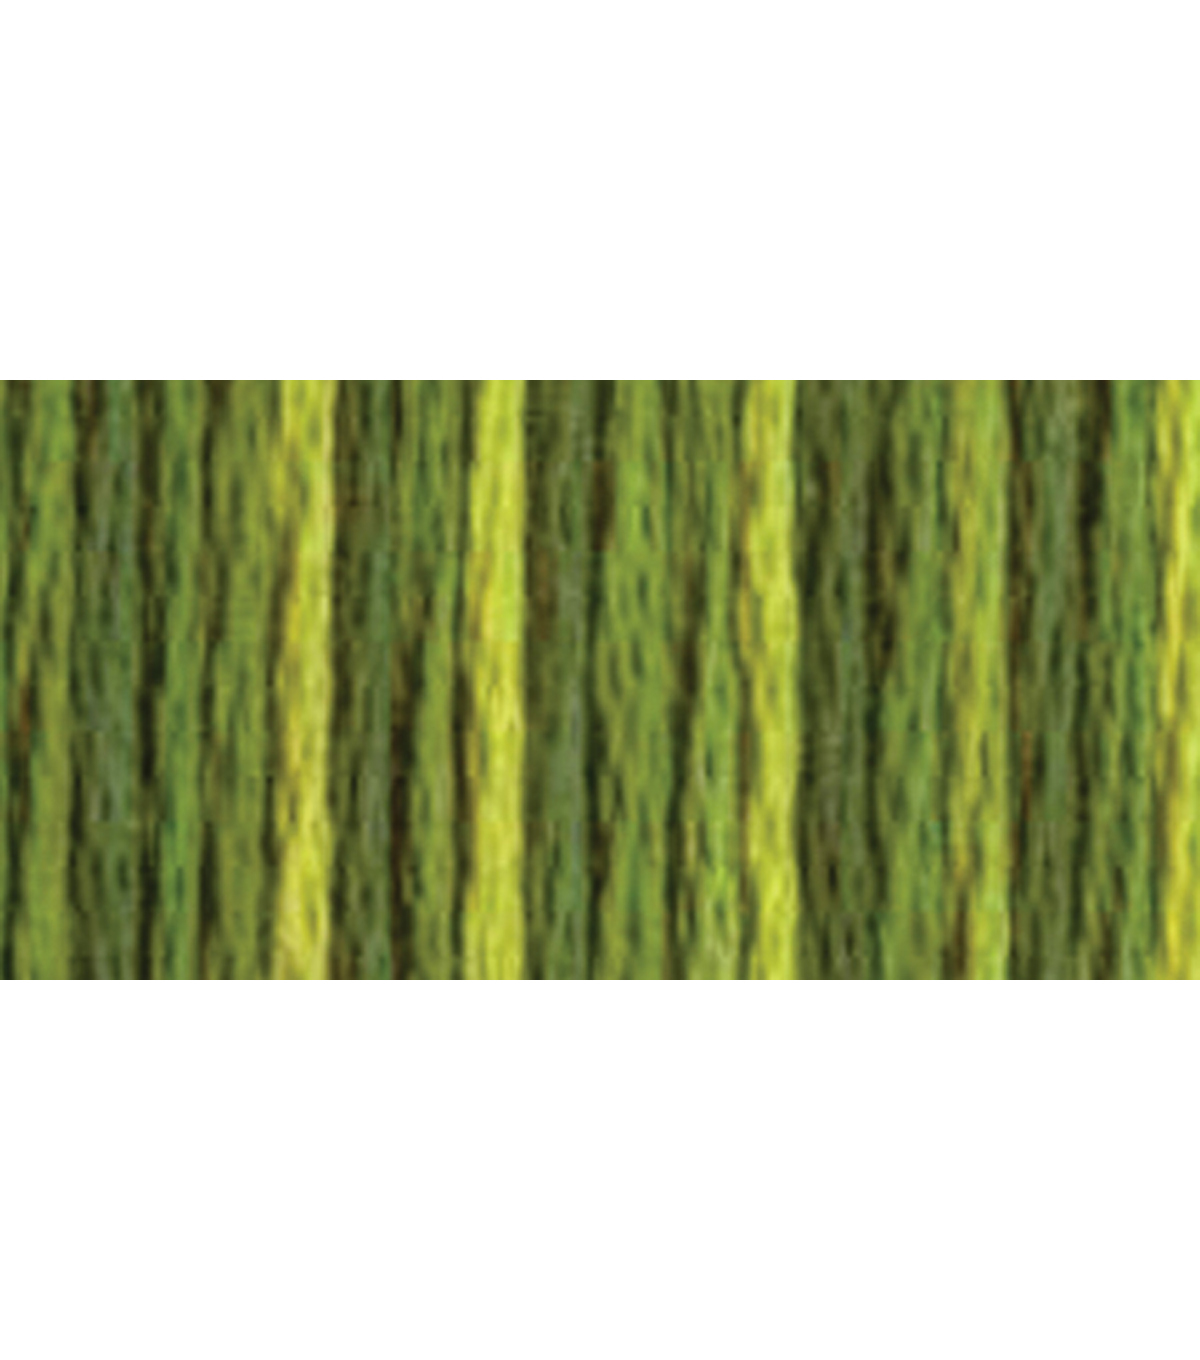 DMC Pearl Cotton Variation Thread 27 Yds Size 5, Amazon Moss